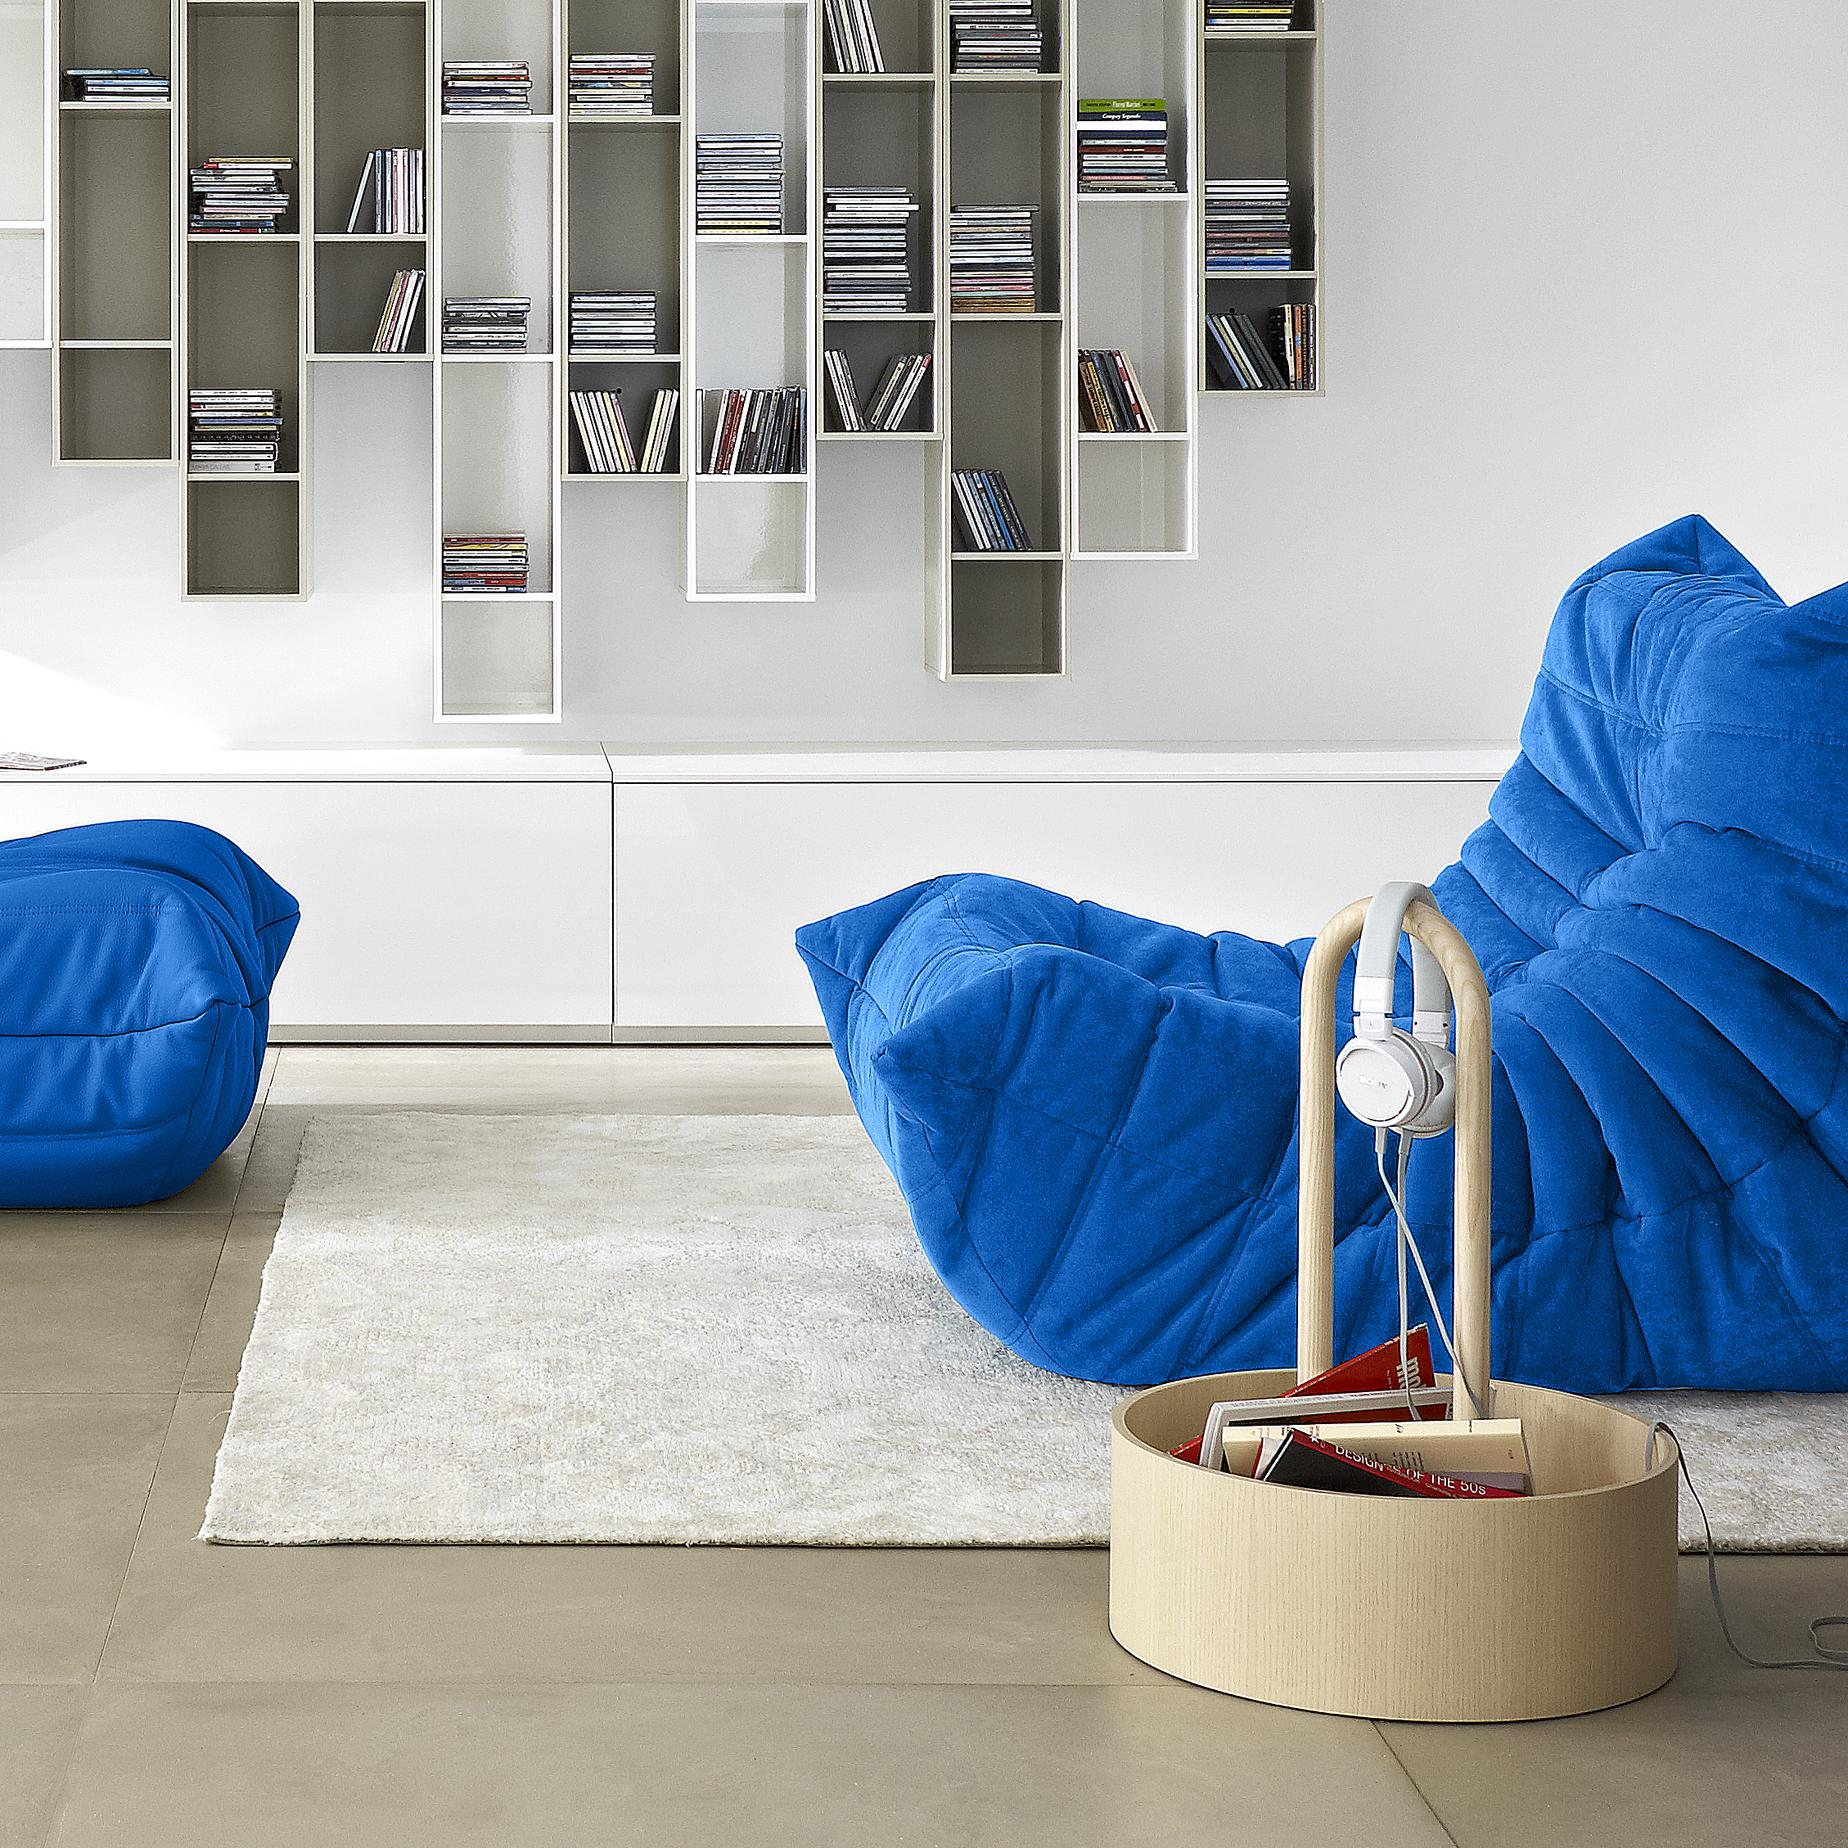 togo armchairs from designer michel ducaroy ligne roset official site. Black Bedroom Furniture Sets. Home Design Ideas